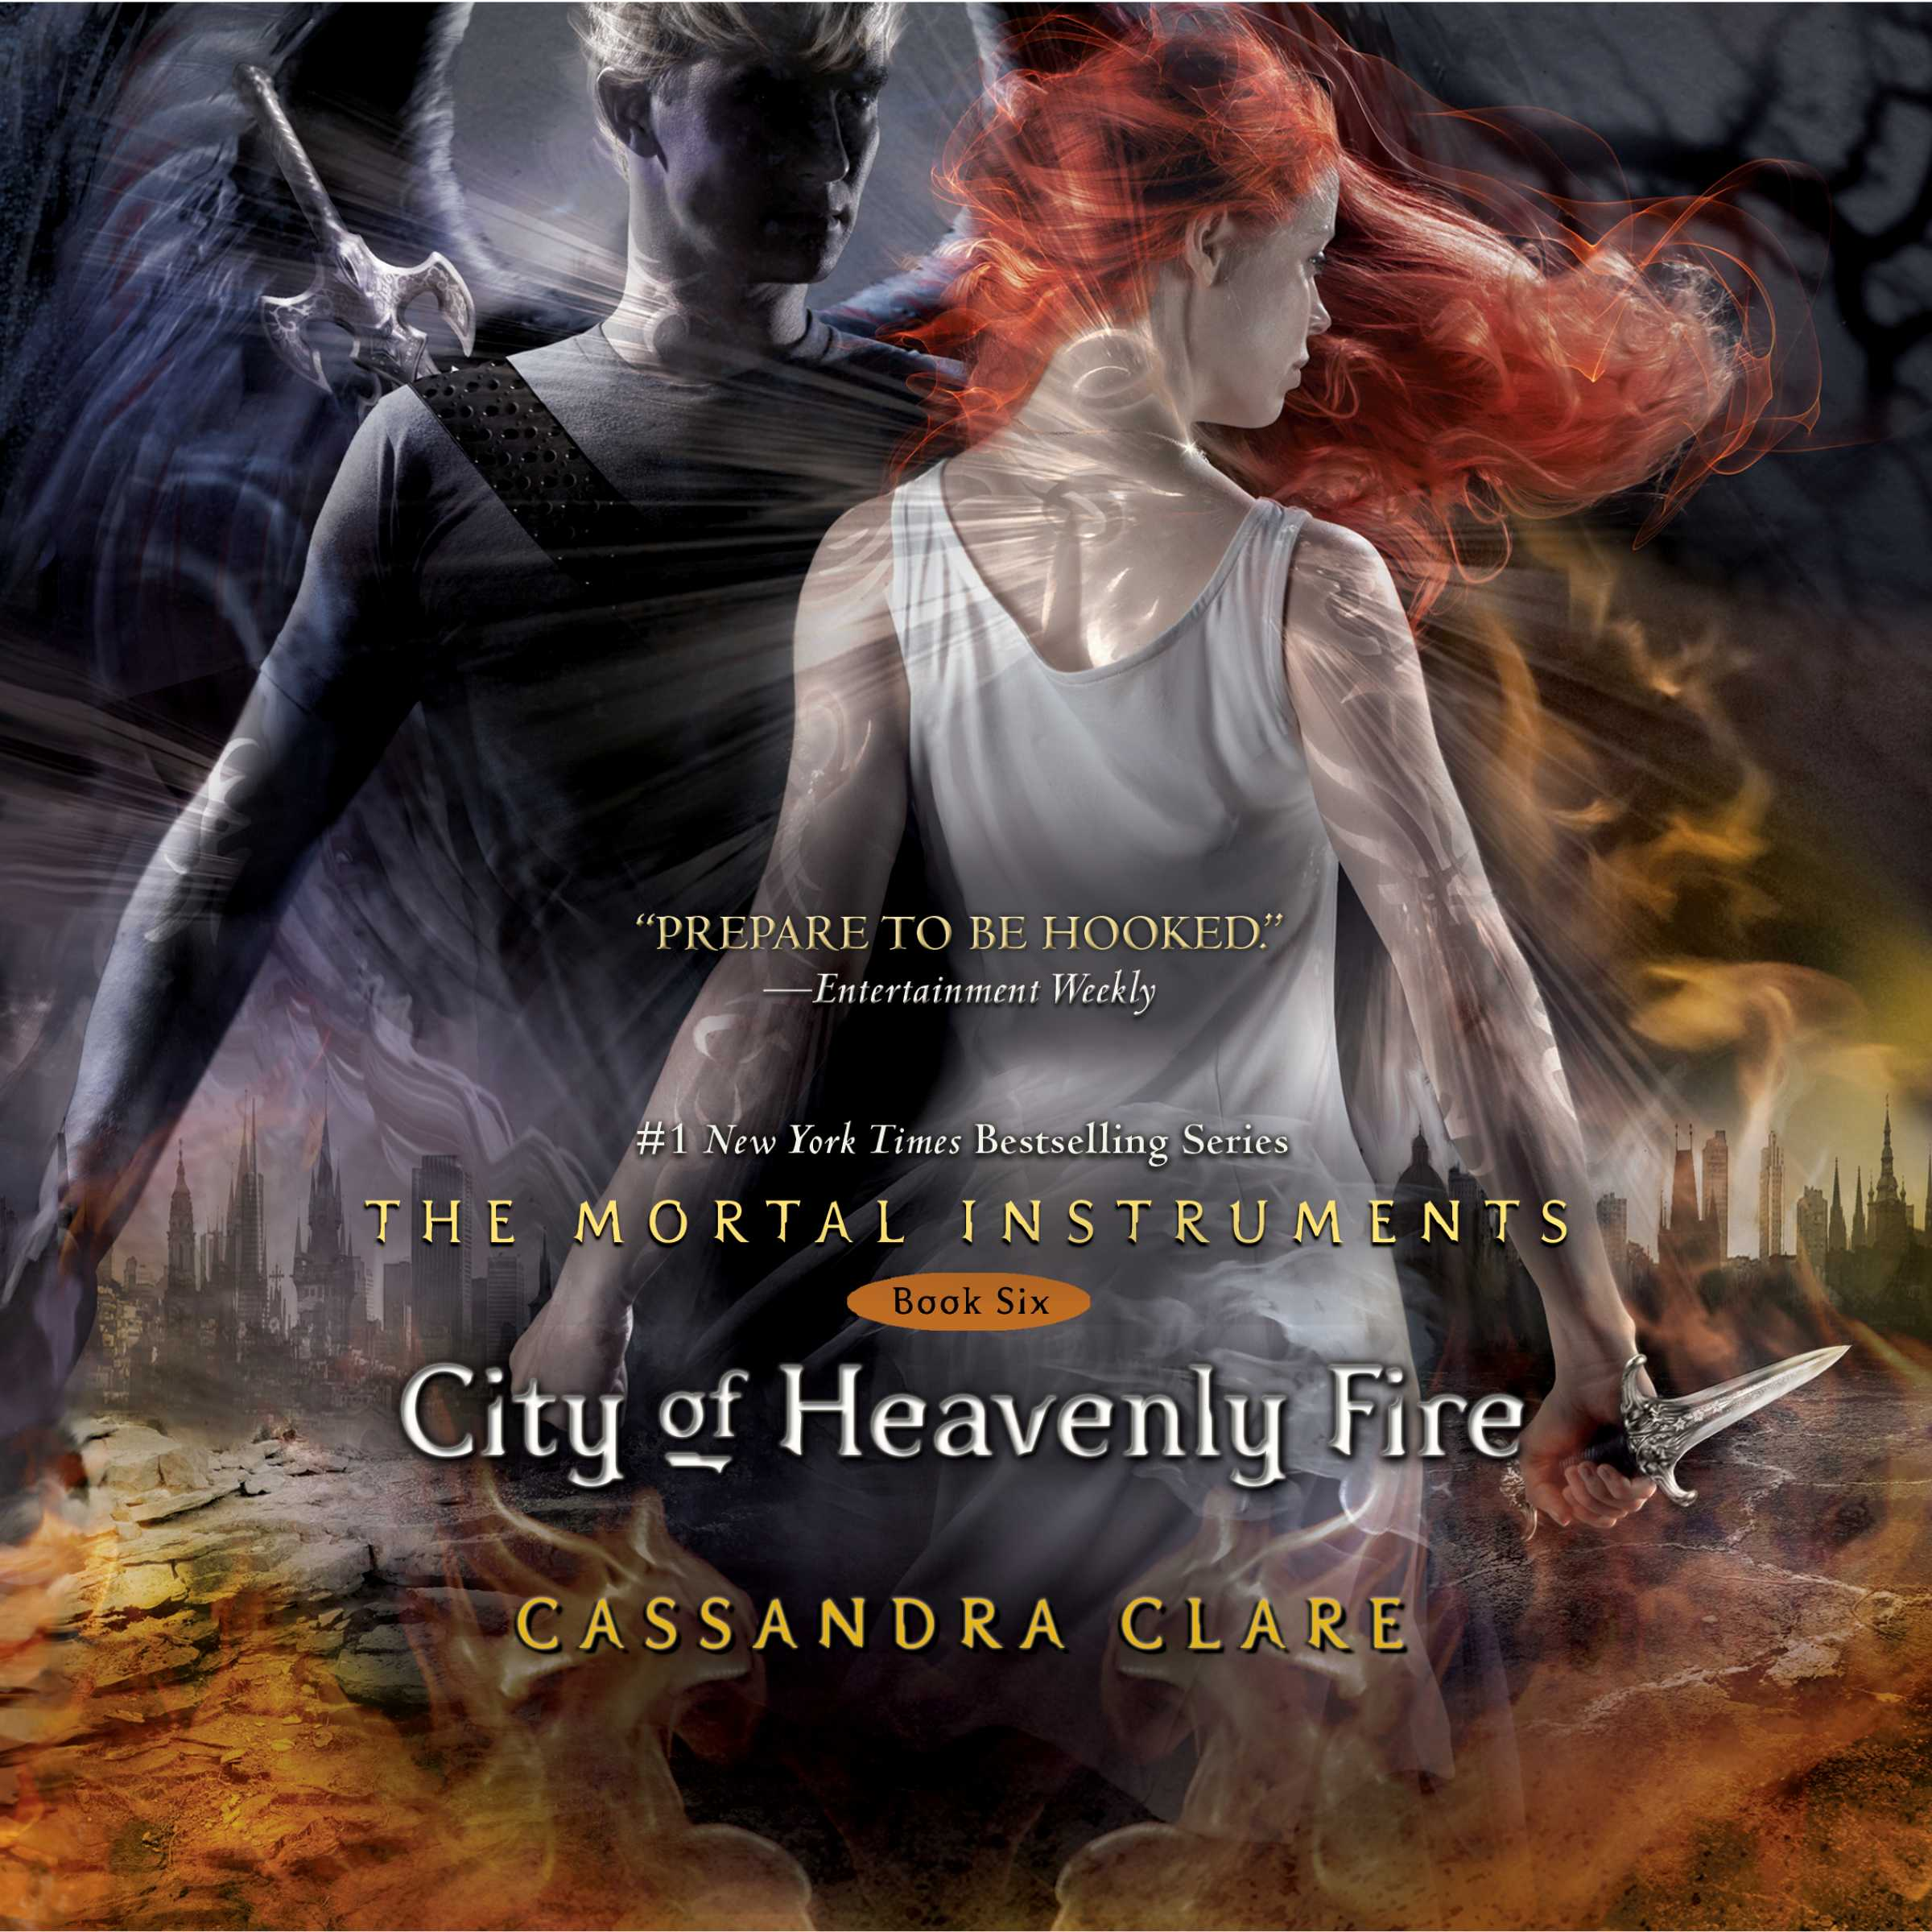 City-of-heavenly-fire-9781442349780_hr